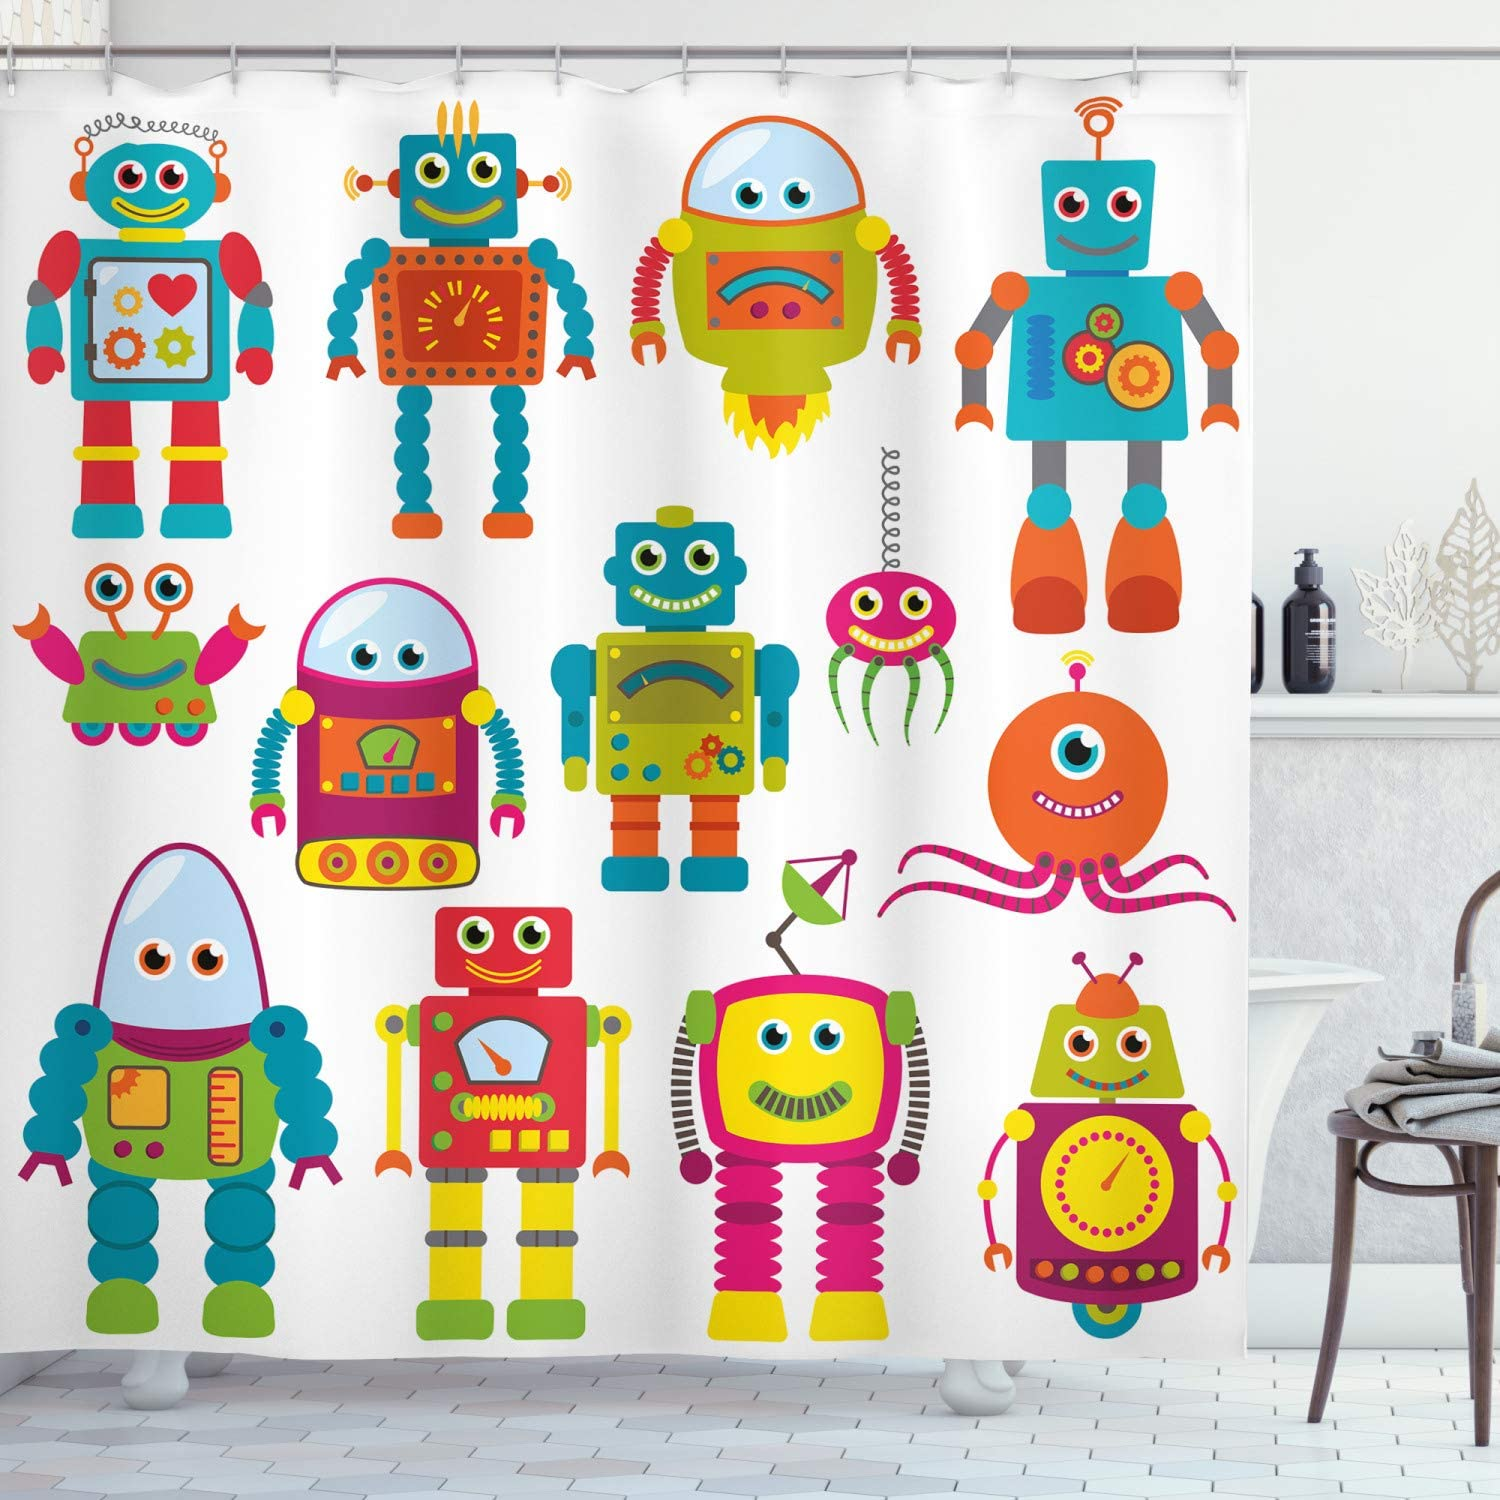 Lunarable Outer Space Shower Curtain, Robot Drawing with Cartoon Future Toys with Smiling Faces Aliens Fun Games, Cloth Fabric Bathroom Decor Set with Hooks, 75